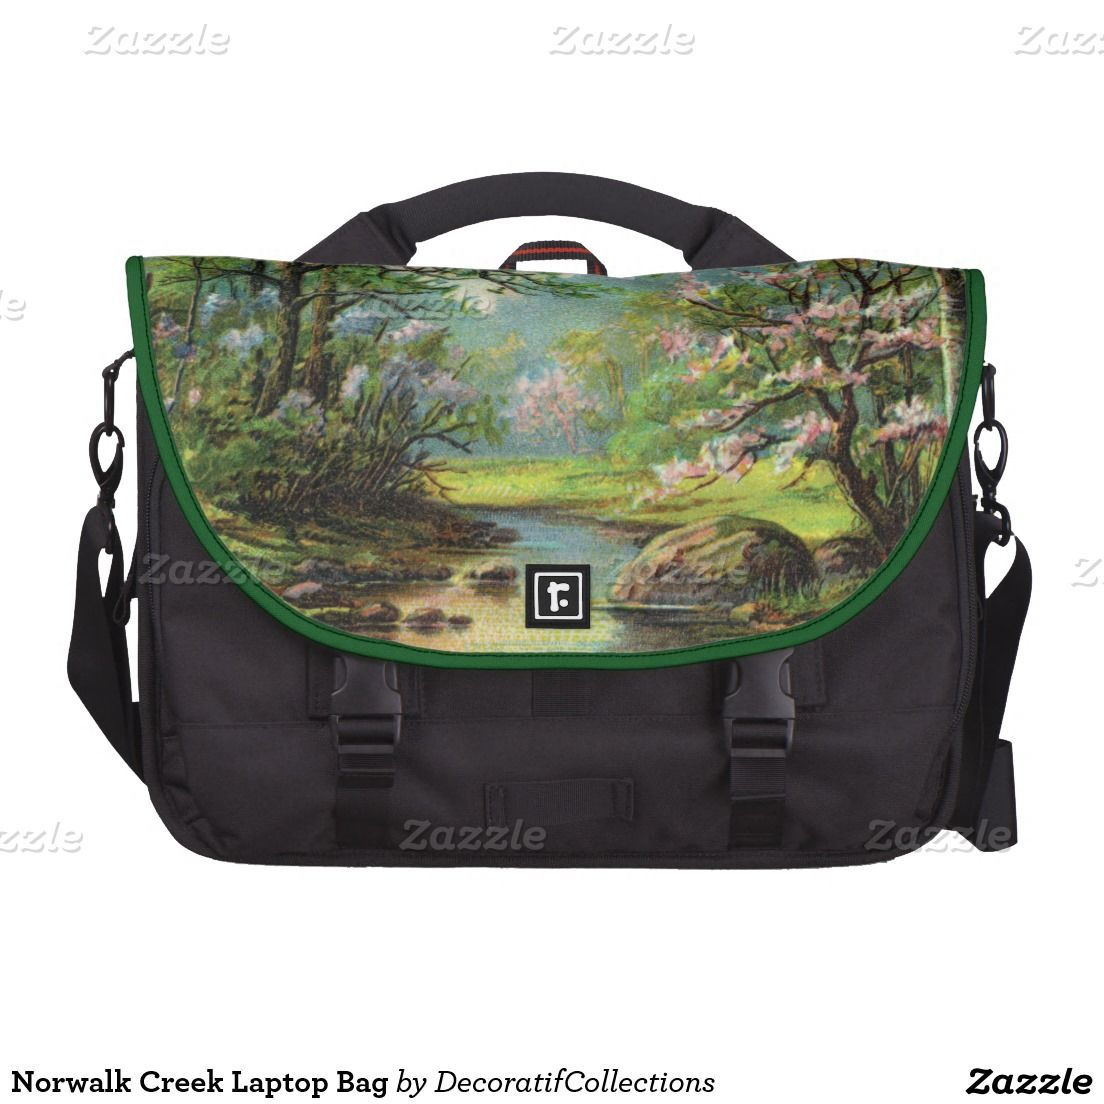 Norwalk Creek Laptop Bag